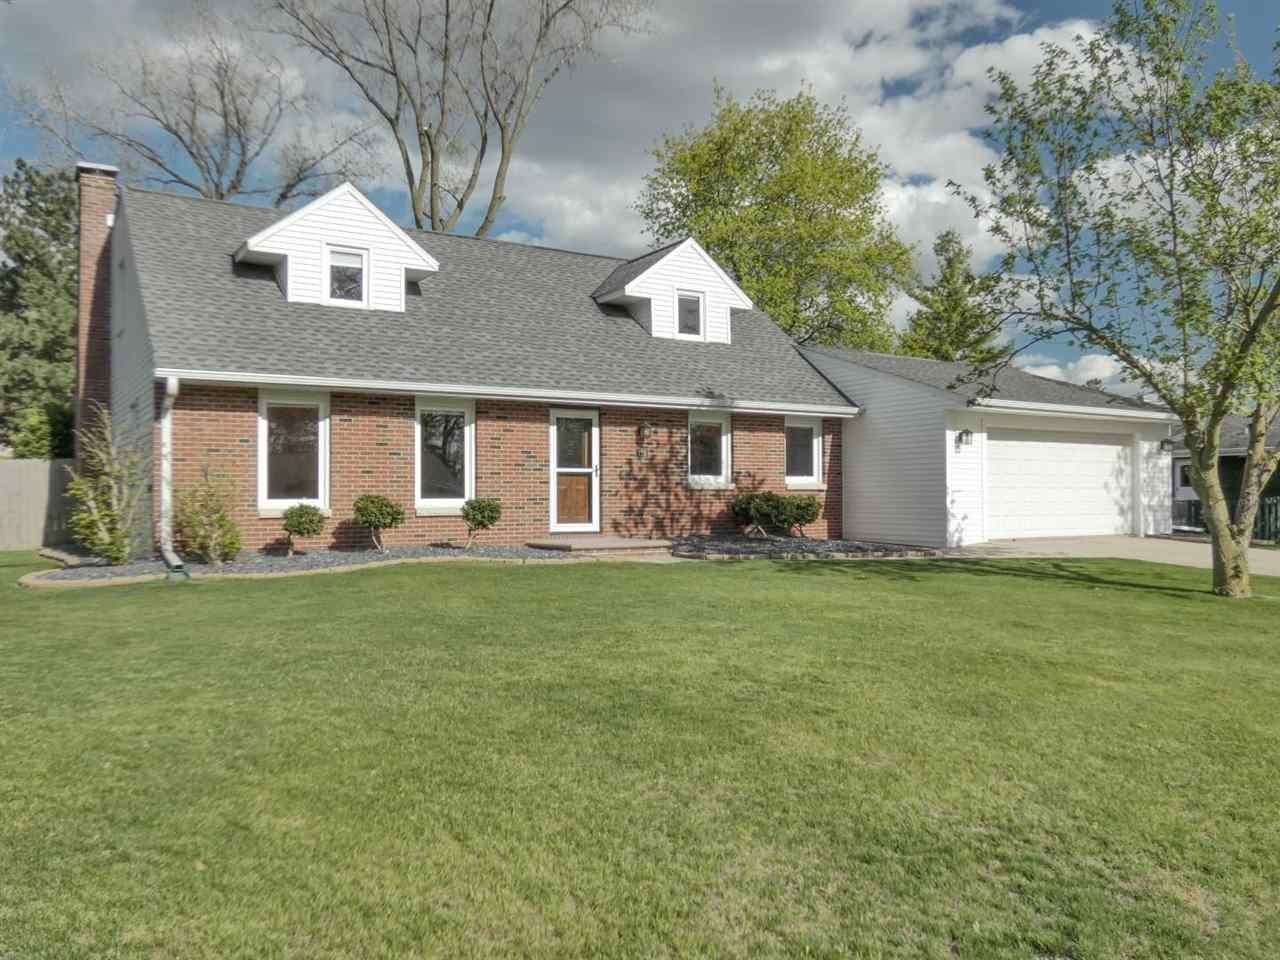 435 ECHO HILL Drive, Green Bay, WI 54302 - MLS#: 50239637